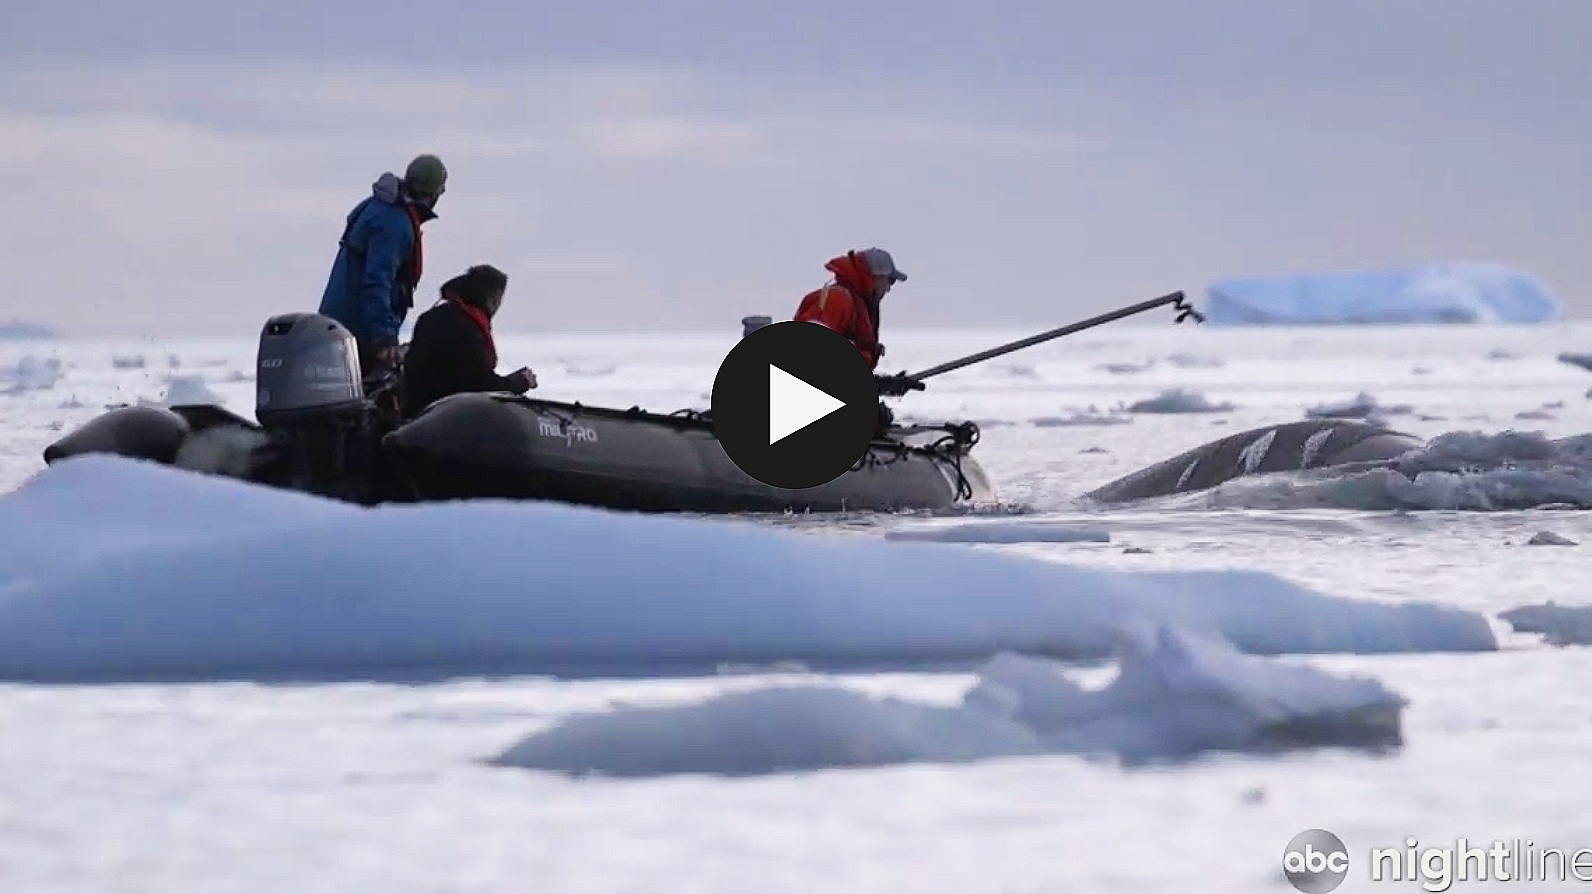 COA scientists featured on abc Nightline - COA researchers brave brutal conditions to research climate change in Antarctica: Part 1